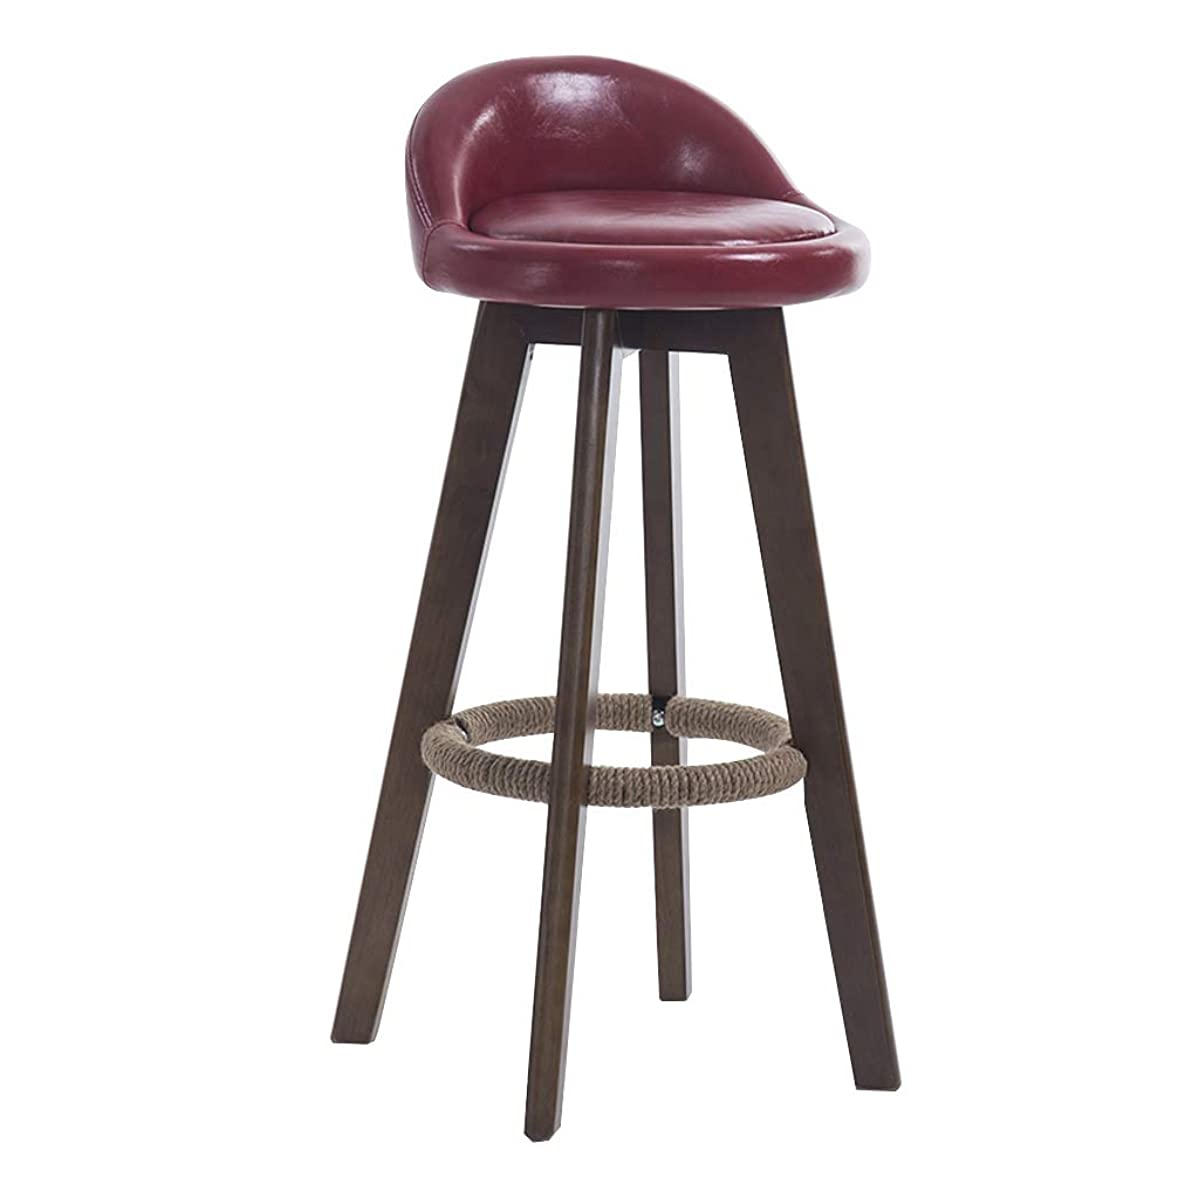 CHY Bar Stool, 360° Rotation Bar Chair, Leather Chair Wooden Footstool, Non Slip Home Kitchen Breakfast Counter High Bench, 4 Colors 63cm/73cm/83cm Simple bar Stool high Stool